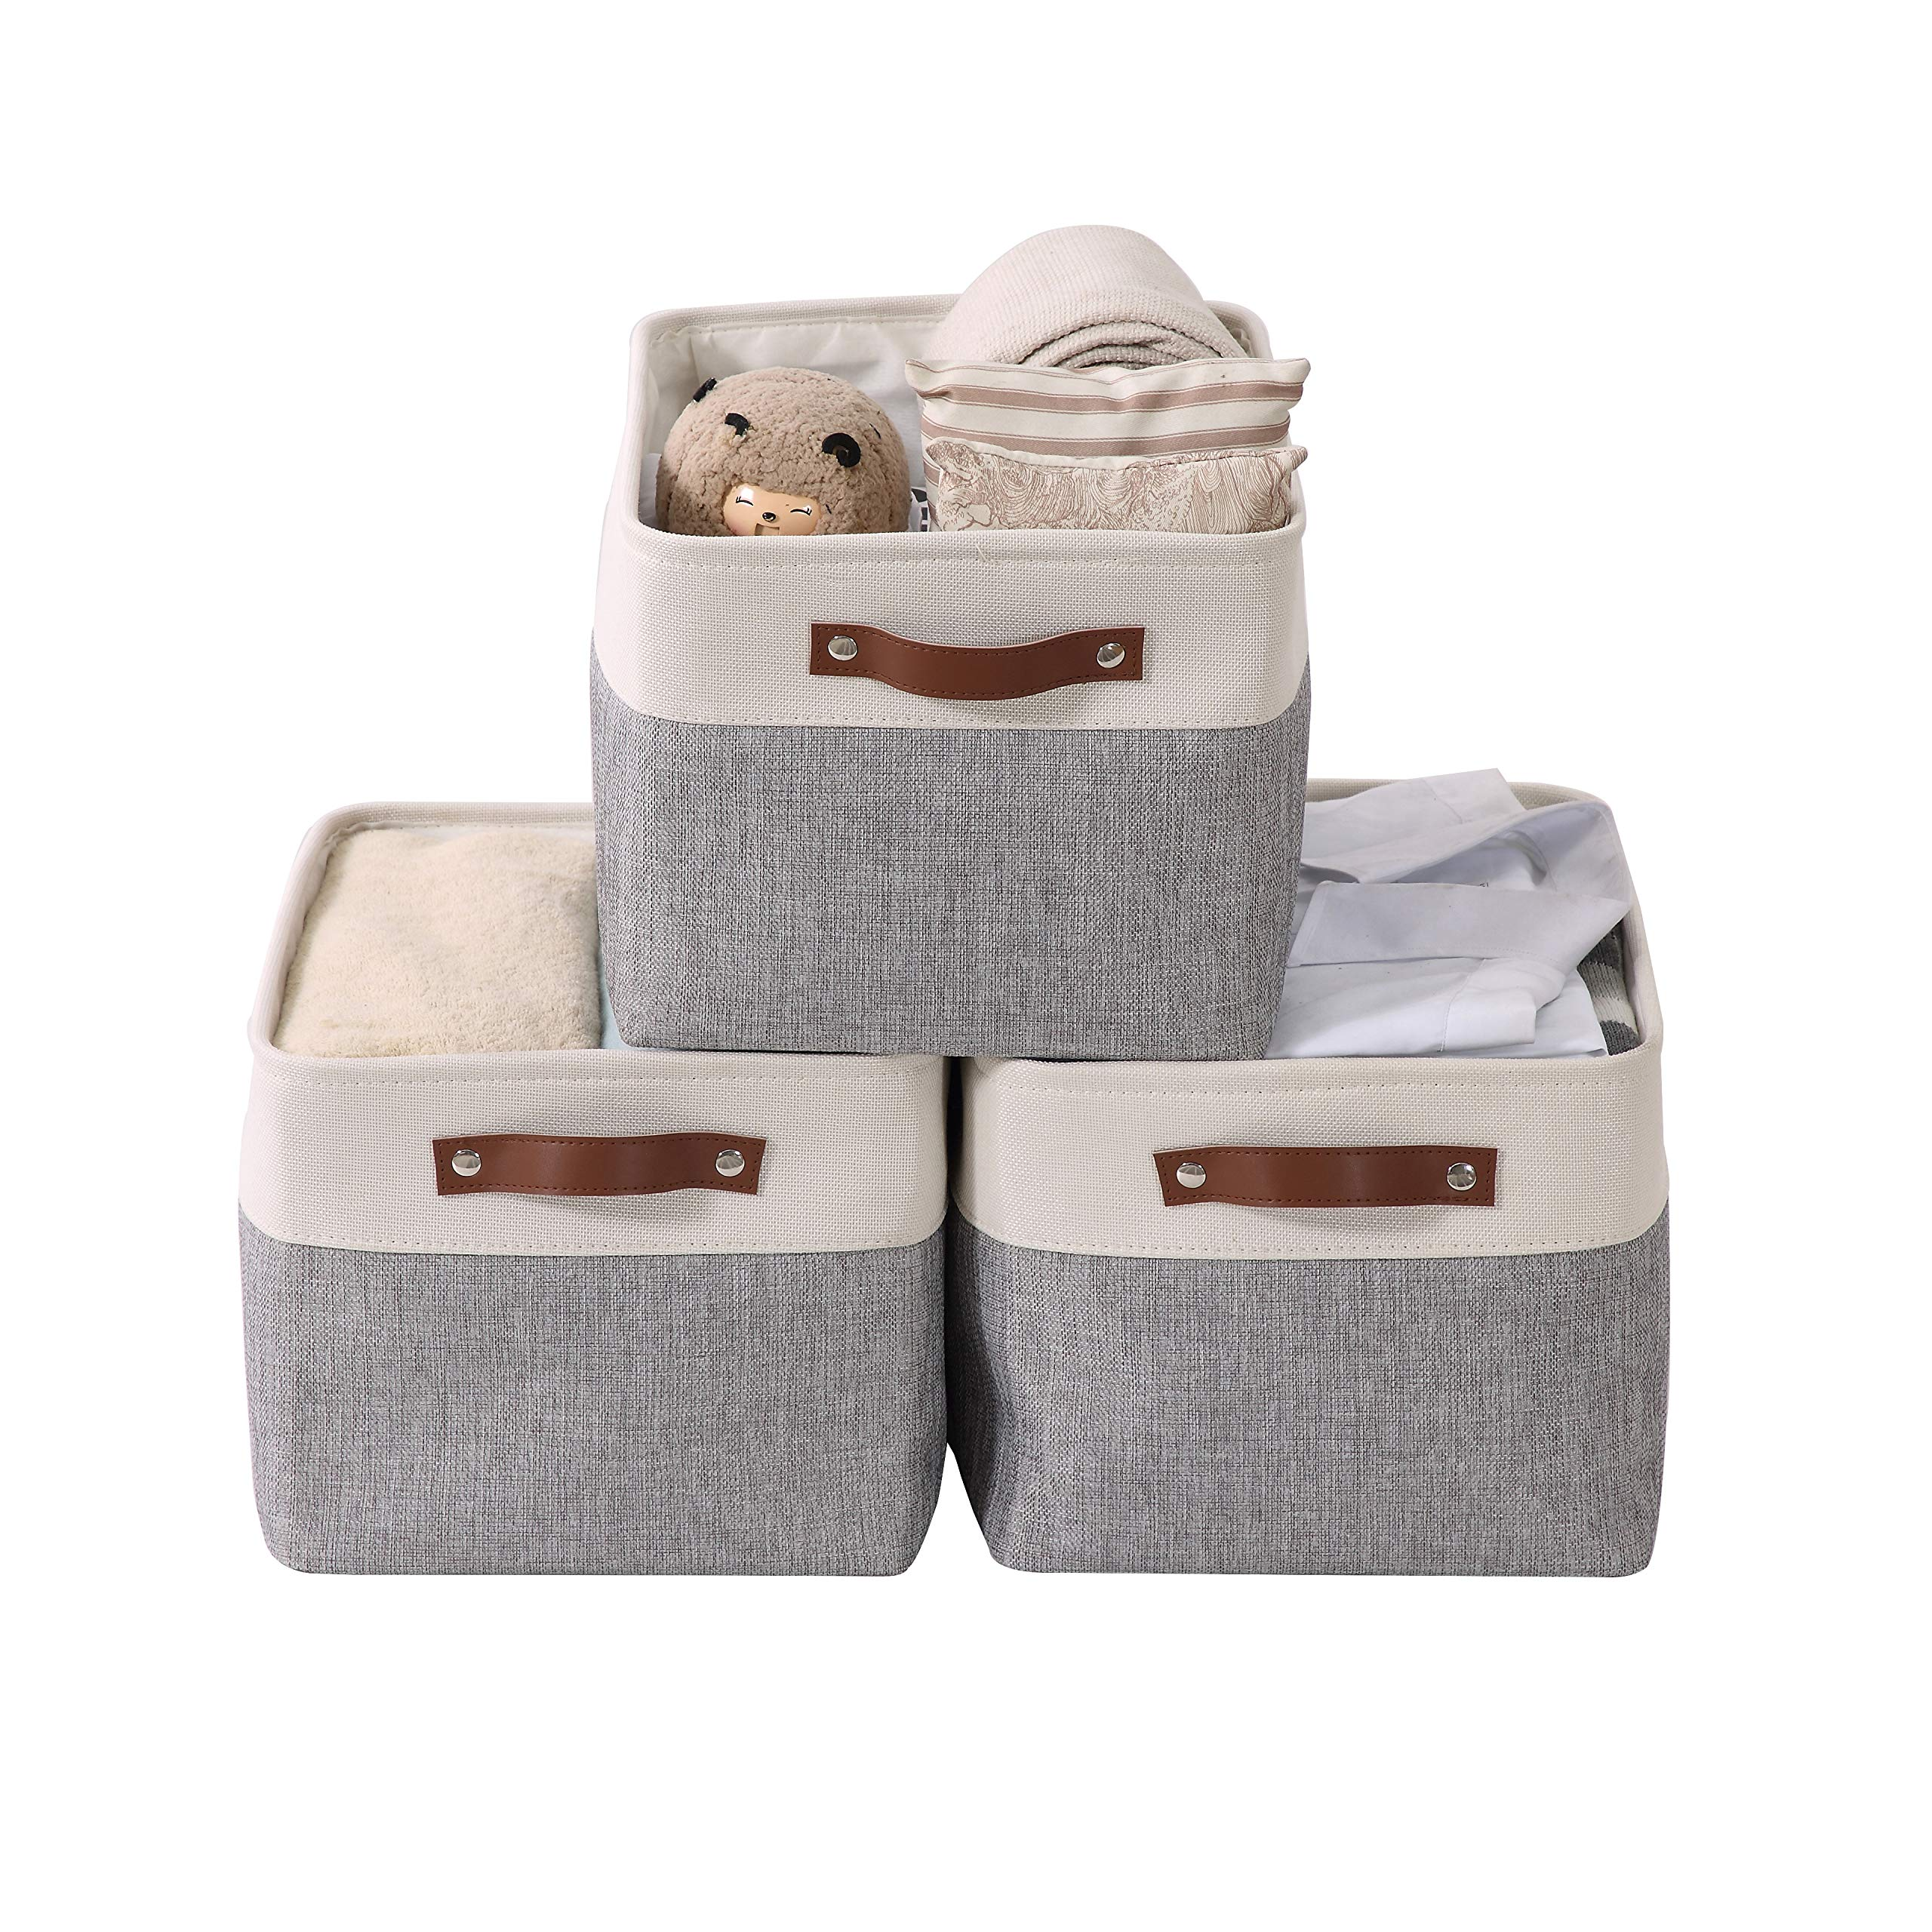 DECOMOMO Large Foldable Storage Bin [3-Pack] Collapsible Sturdy Cationic Fabric Storage Basket Cube W/Handles for Organizing Shelf Nursery Home Closet & Office - Grey & White 15 x 11 x 9.5 by DECOMOMO